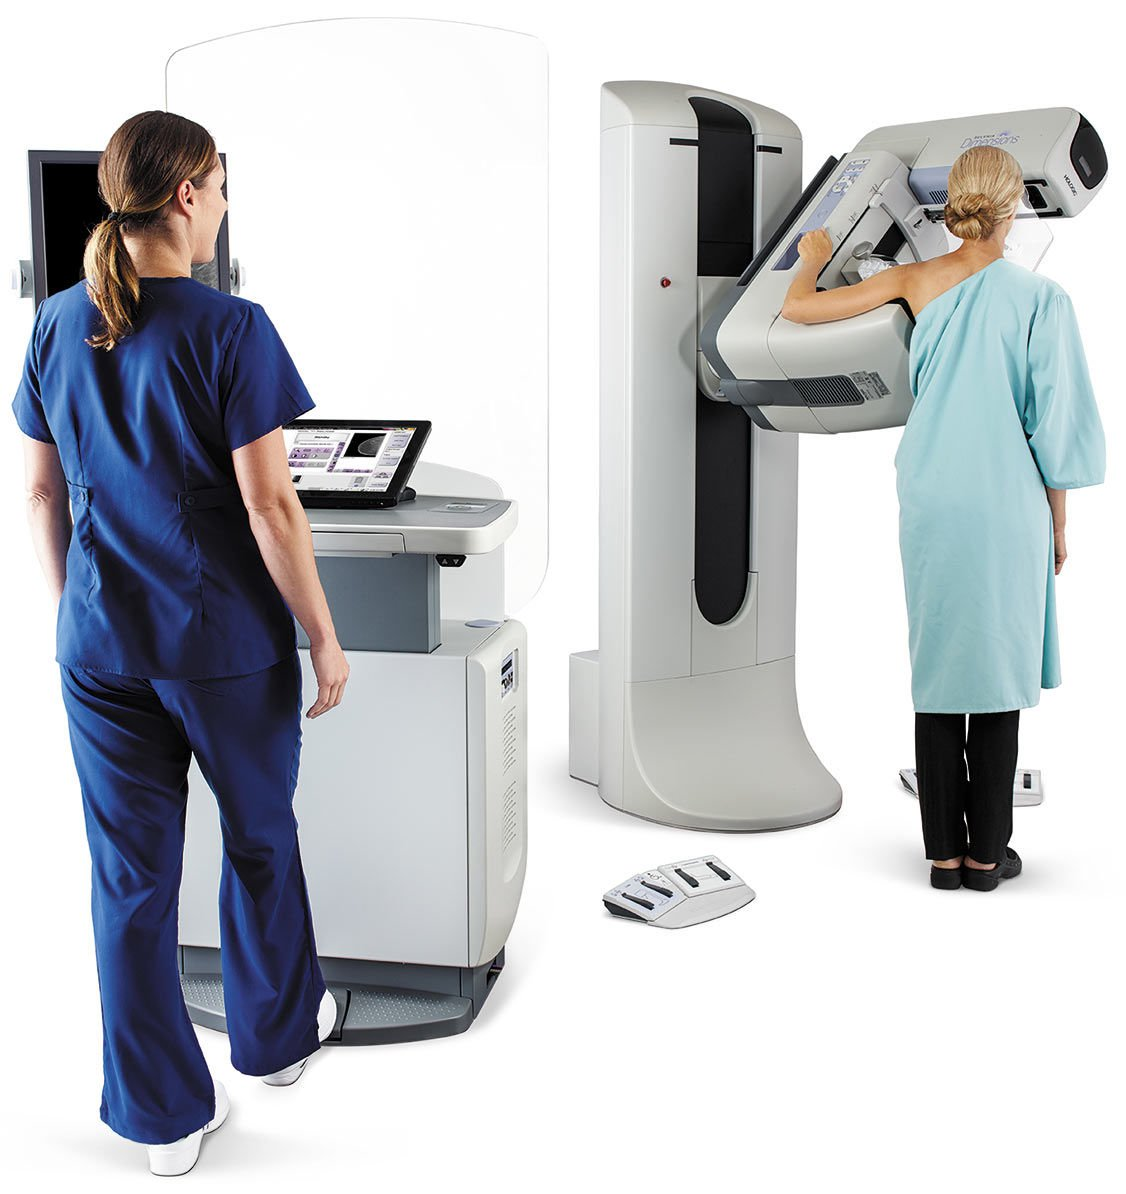 BCHC Approves Purchase Of 3-D Mammogram Machine